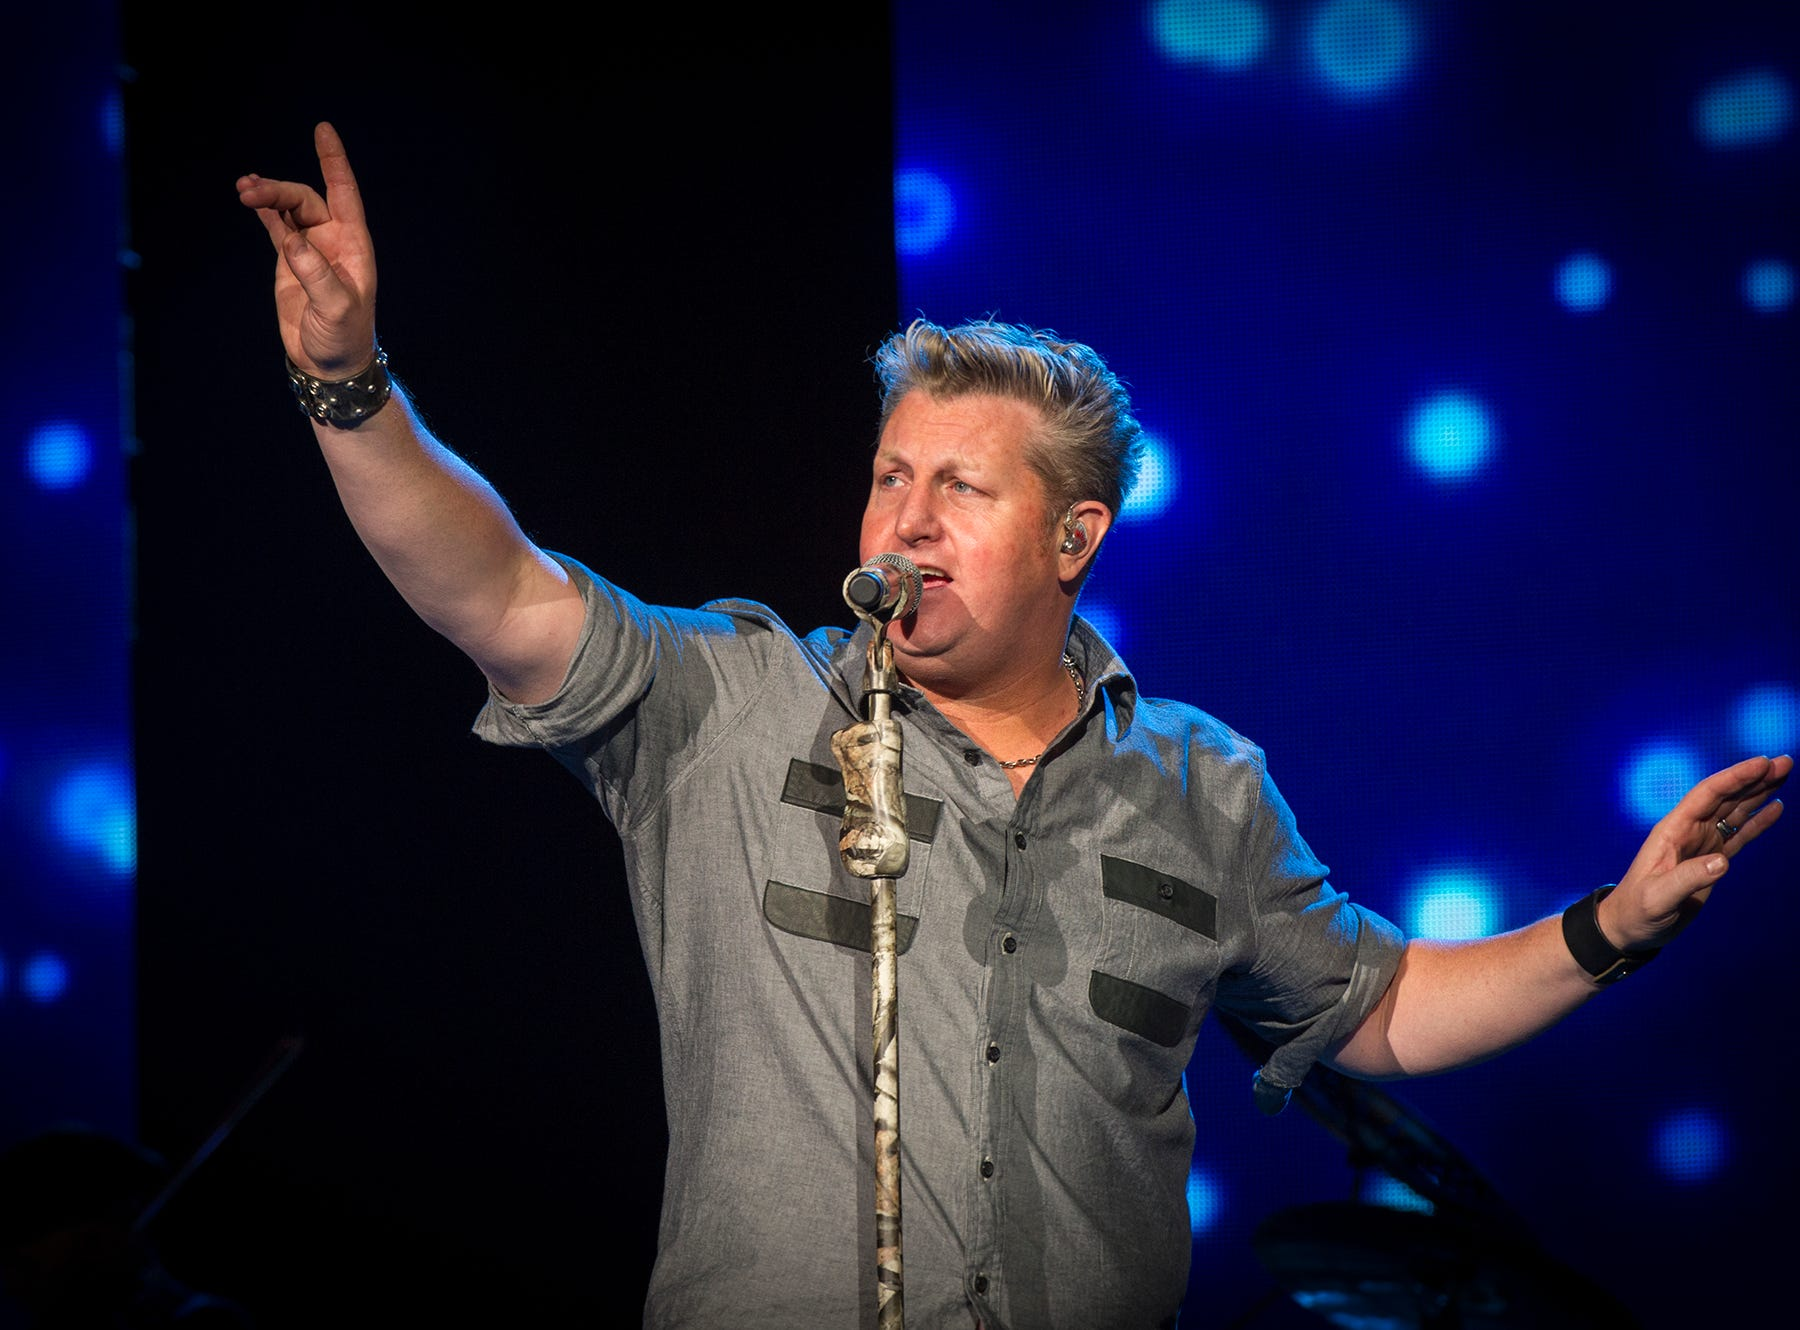 Lead vocalist Gary LeVox performs as part of the trio Rascal Flatts. Rascal Flatts and Sheryl Crow performed Saturday, May 17, 2014, at Klipsch Music Center with opening act Gloriana. The Rewind Tour is the season opener for the amphitheater.